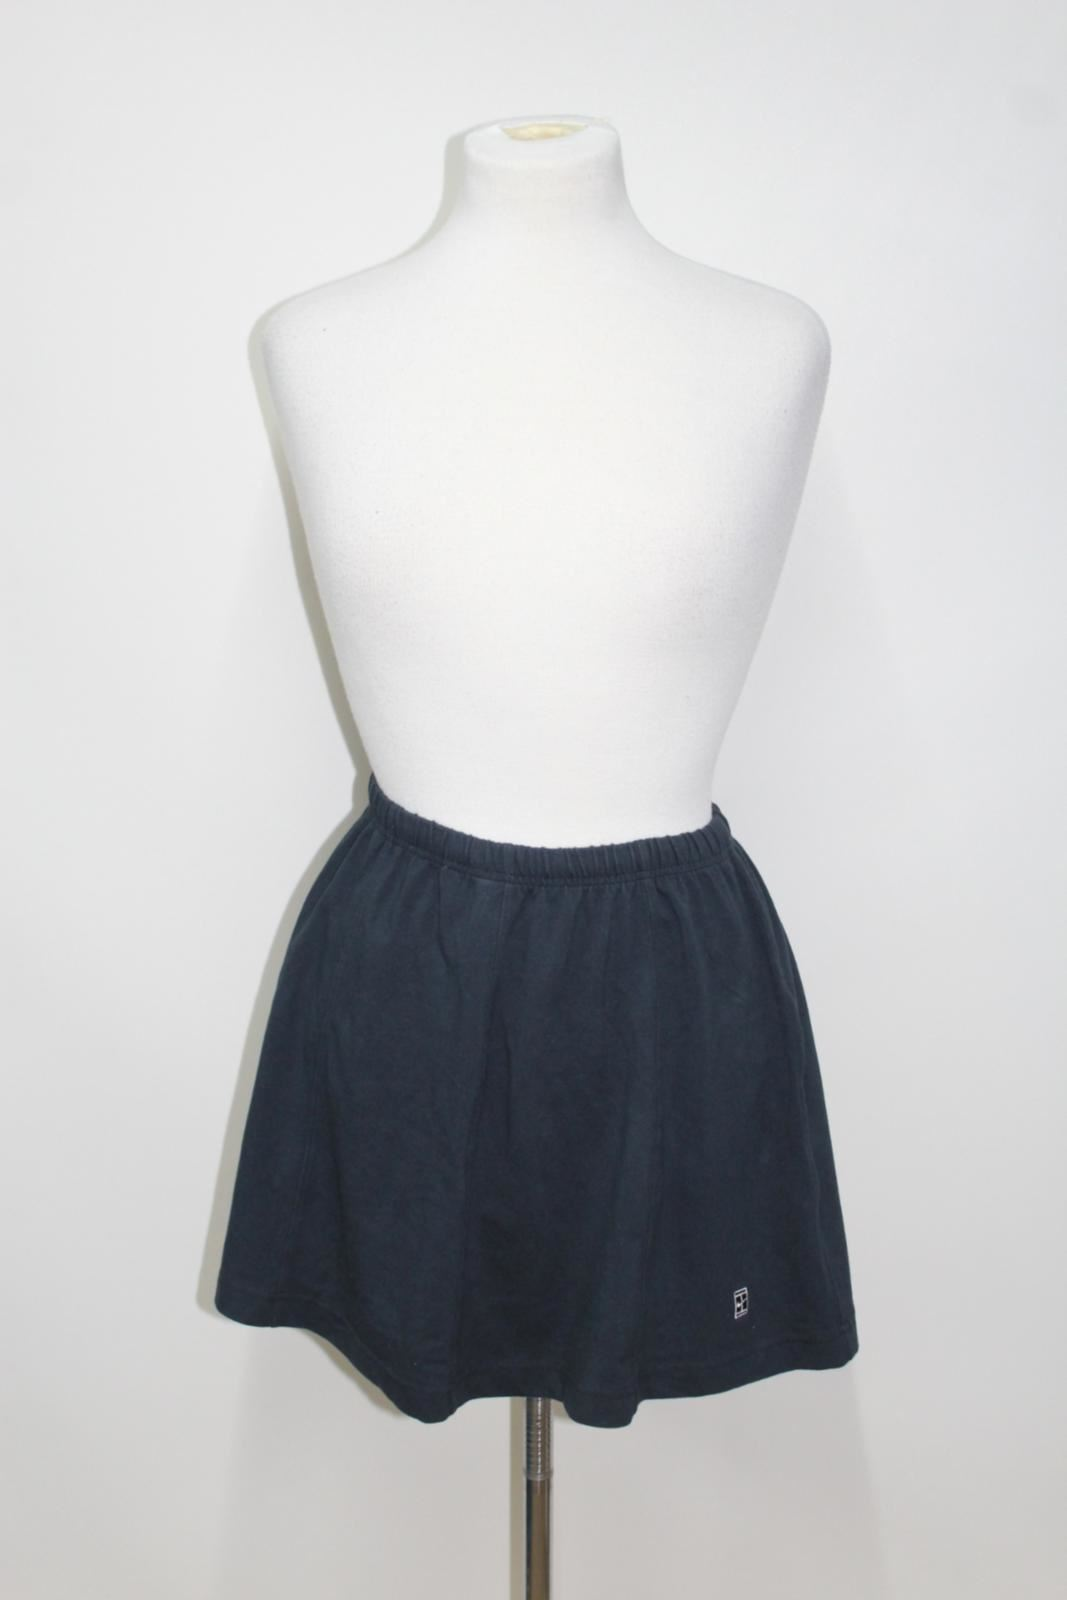 NIKE Ladies' Navy bluee Vintage Tennis Court Challenge Jersey Skirt Size S